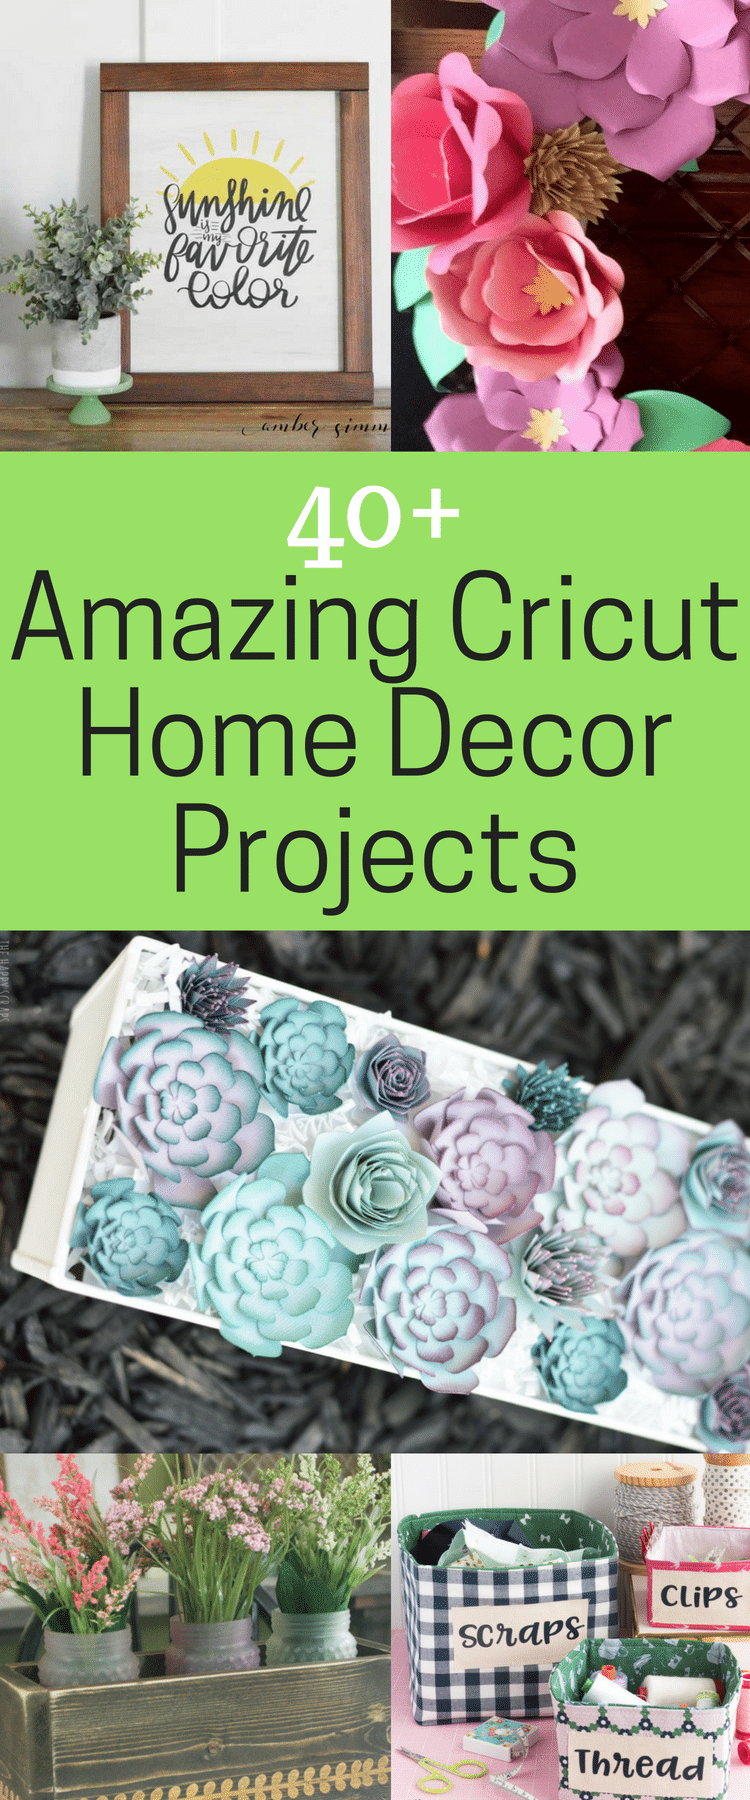 cricut home decor 40+ of the BEST Cricut Home Décor Projects